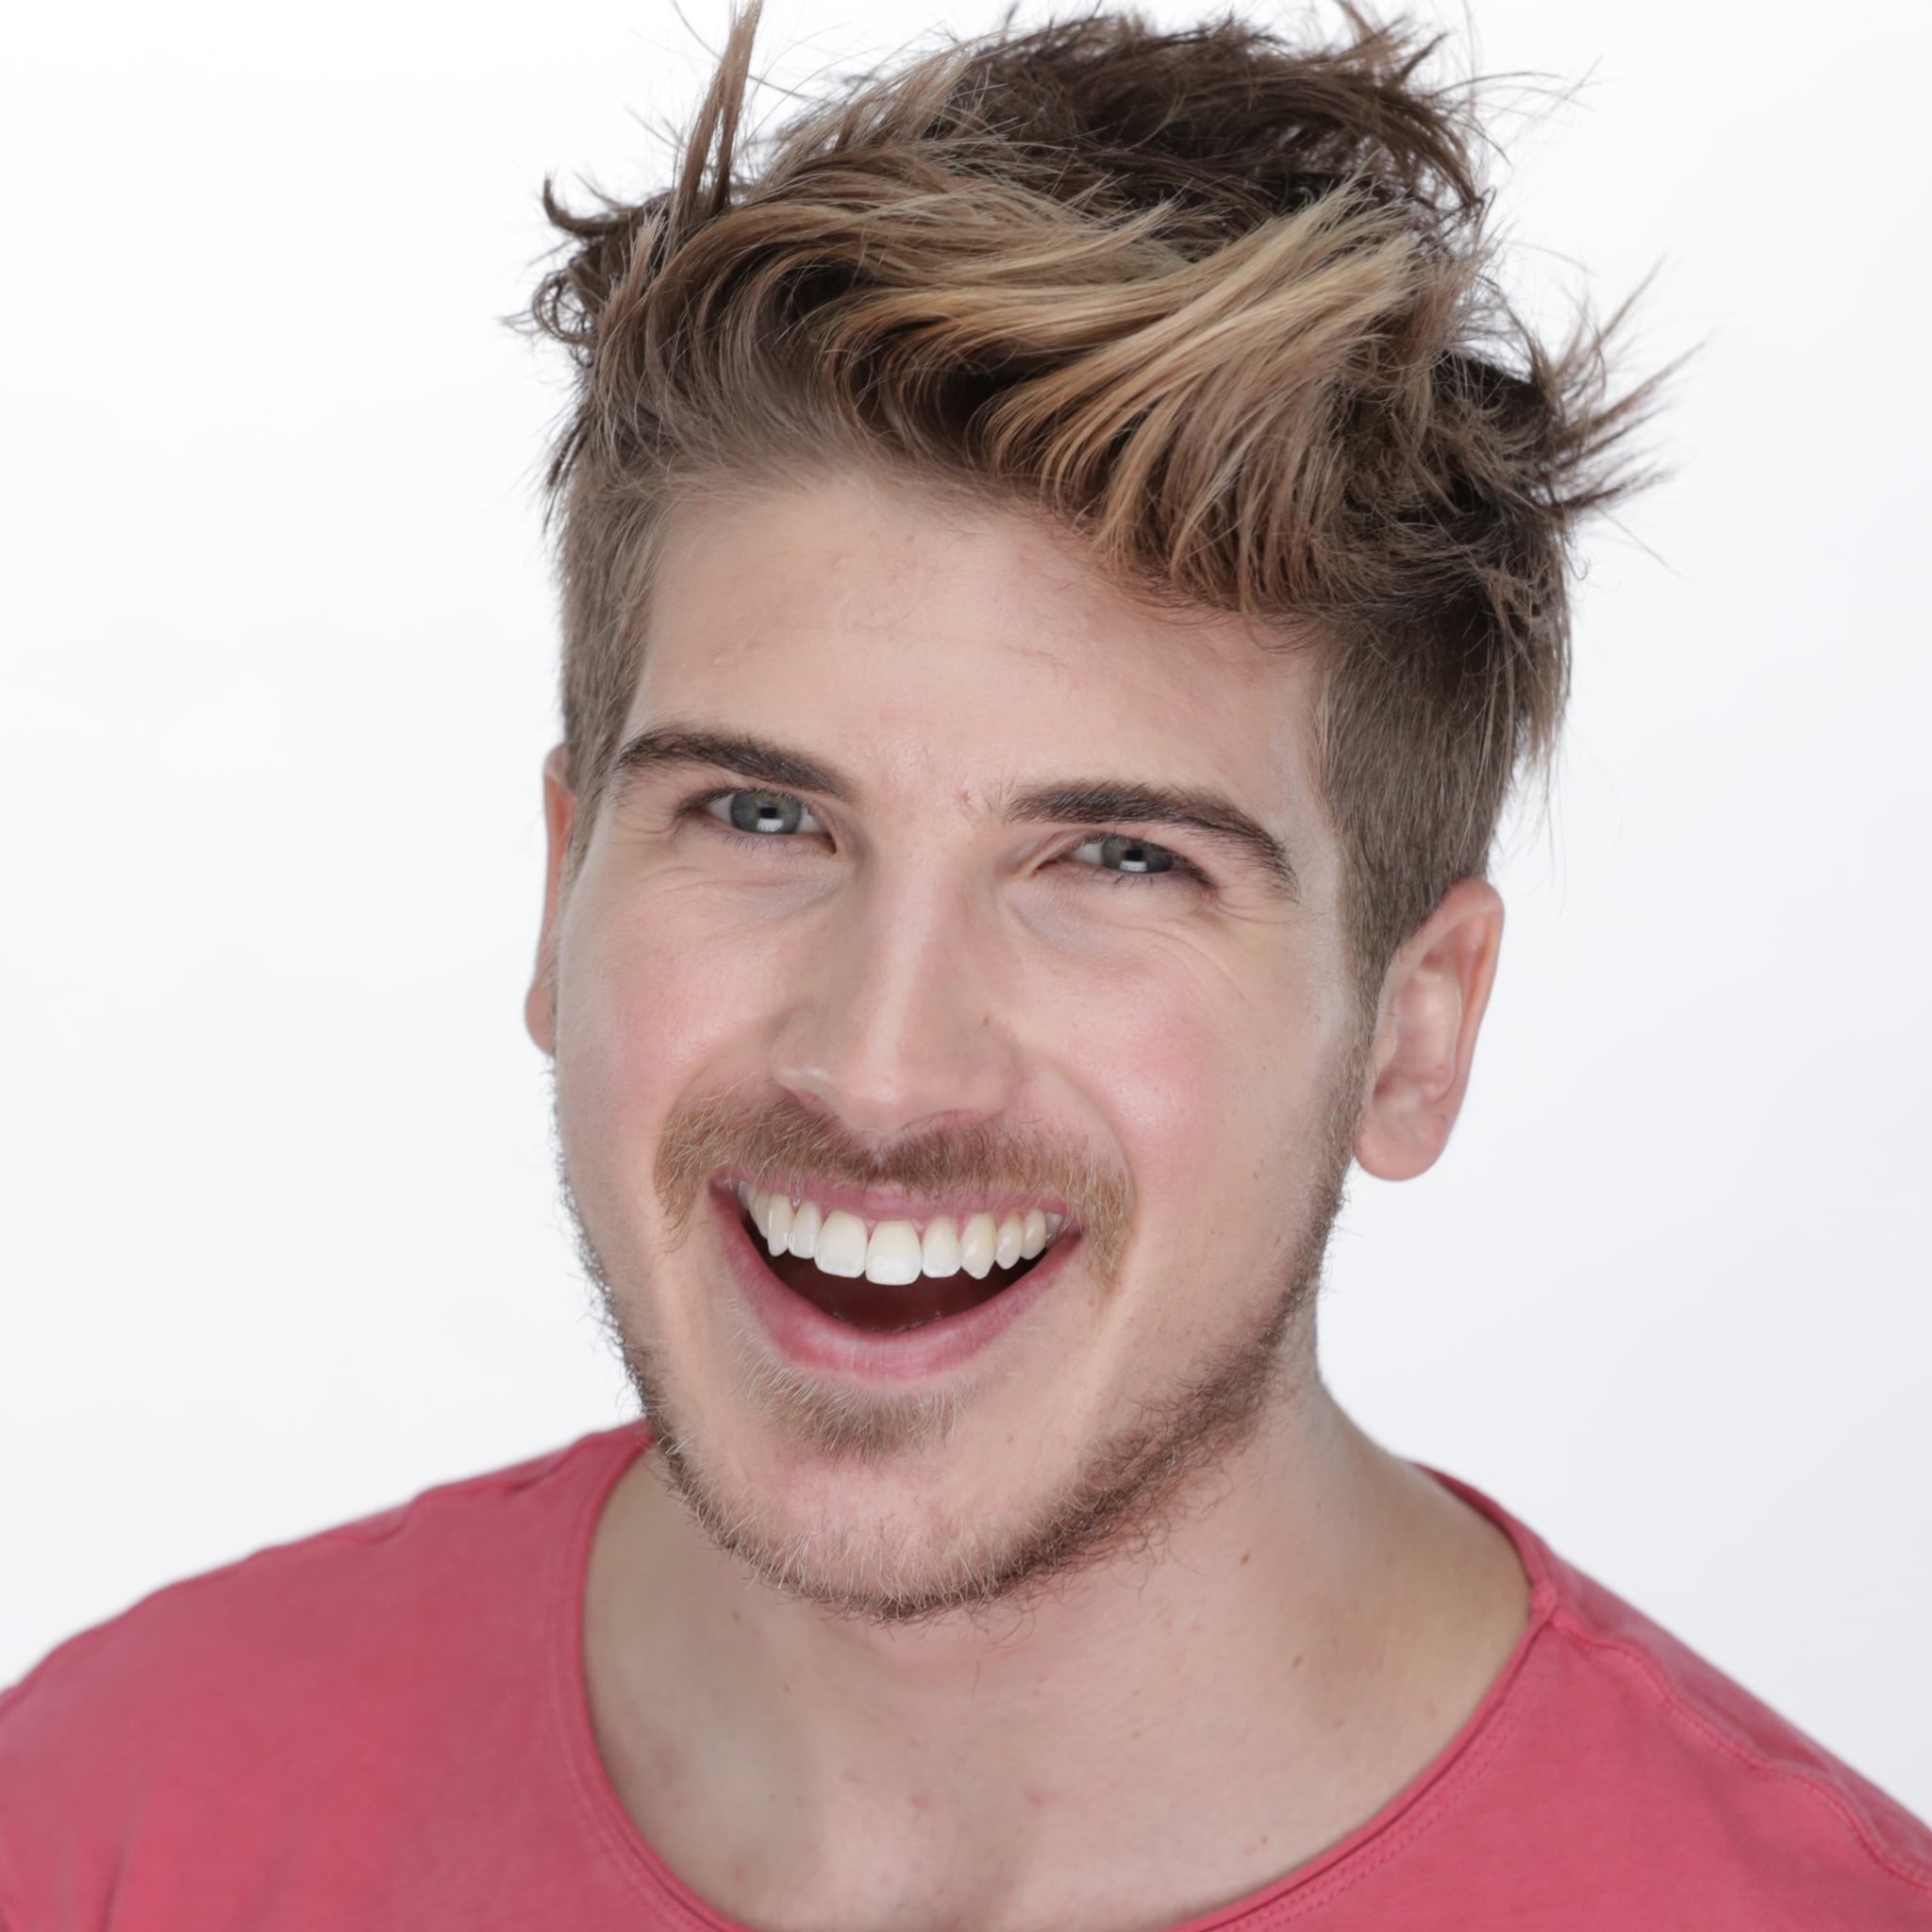 joey graceffa boyfriendjoey graceffa – don't wait, joey graceffa and daniel preda, joey graceffa boyfriend, joey graceffa book, joey graceffa height, joey graceffa age, joey graceffa song, joey graceffa 2012, joey graceffa don't wait lyrics, joey graceffa storm, joey graceffa gaming channel, joey graceffa minecraft texture pack, joey graceffa daniel, joey graceffa vk, joey graceffa and daniel brothers, joey graceffa png, joey graceffa wolf, joey graceffa 2007, joey graceffa life is strange, joey graceffa glasses